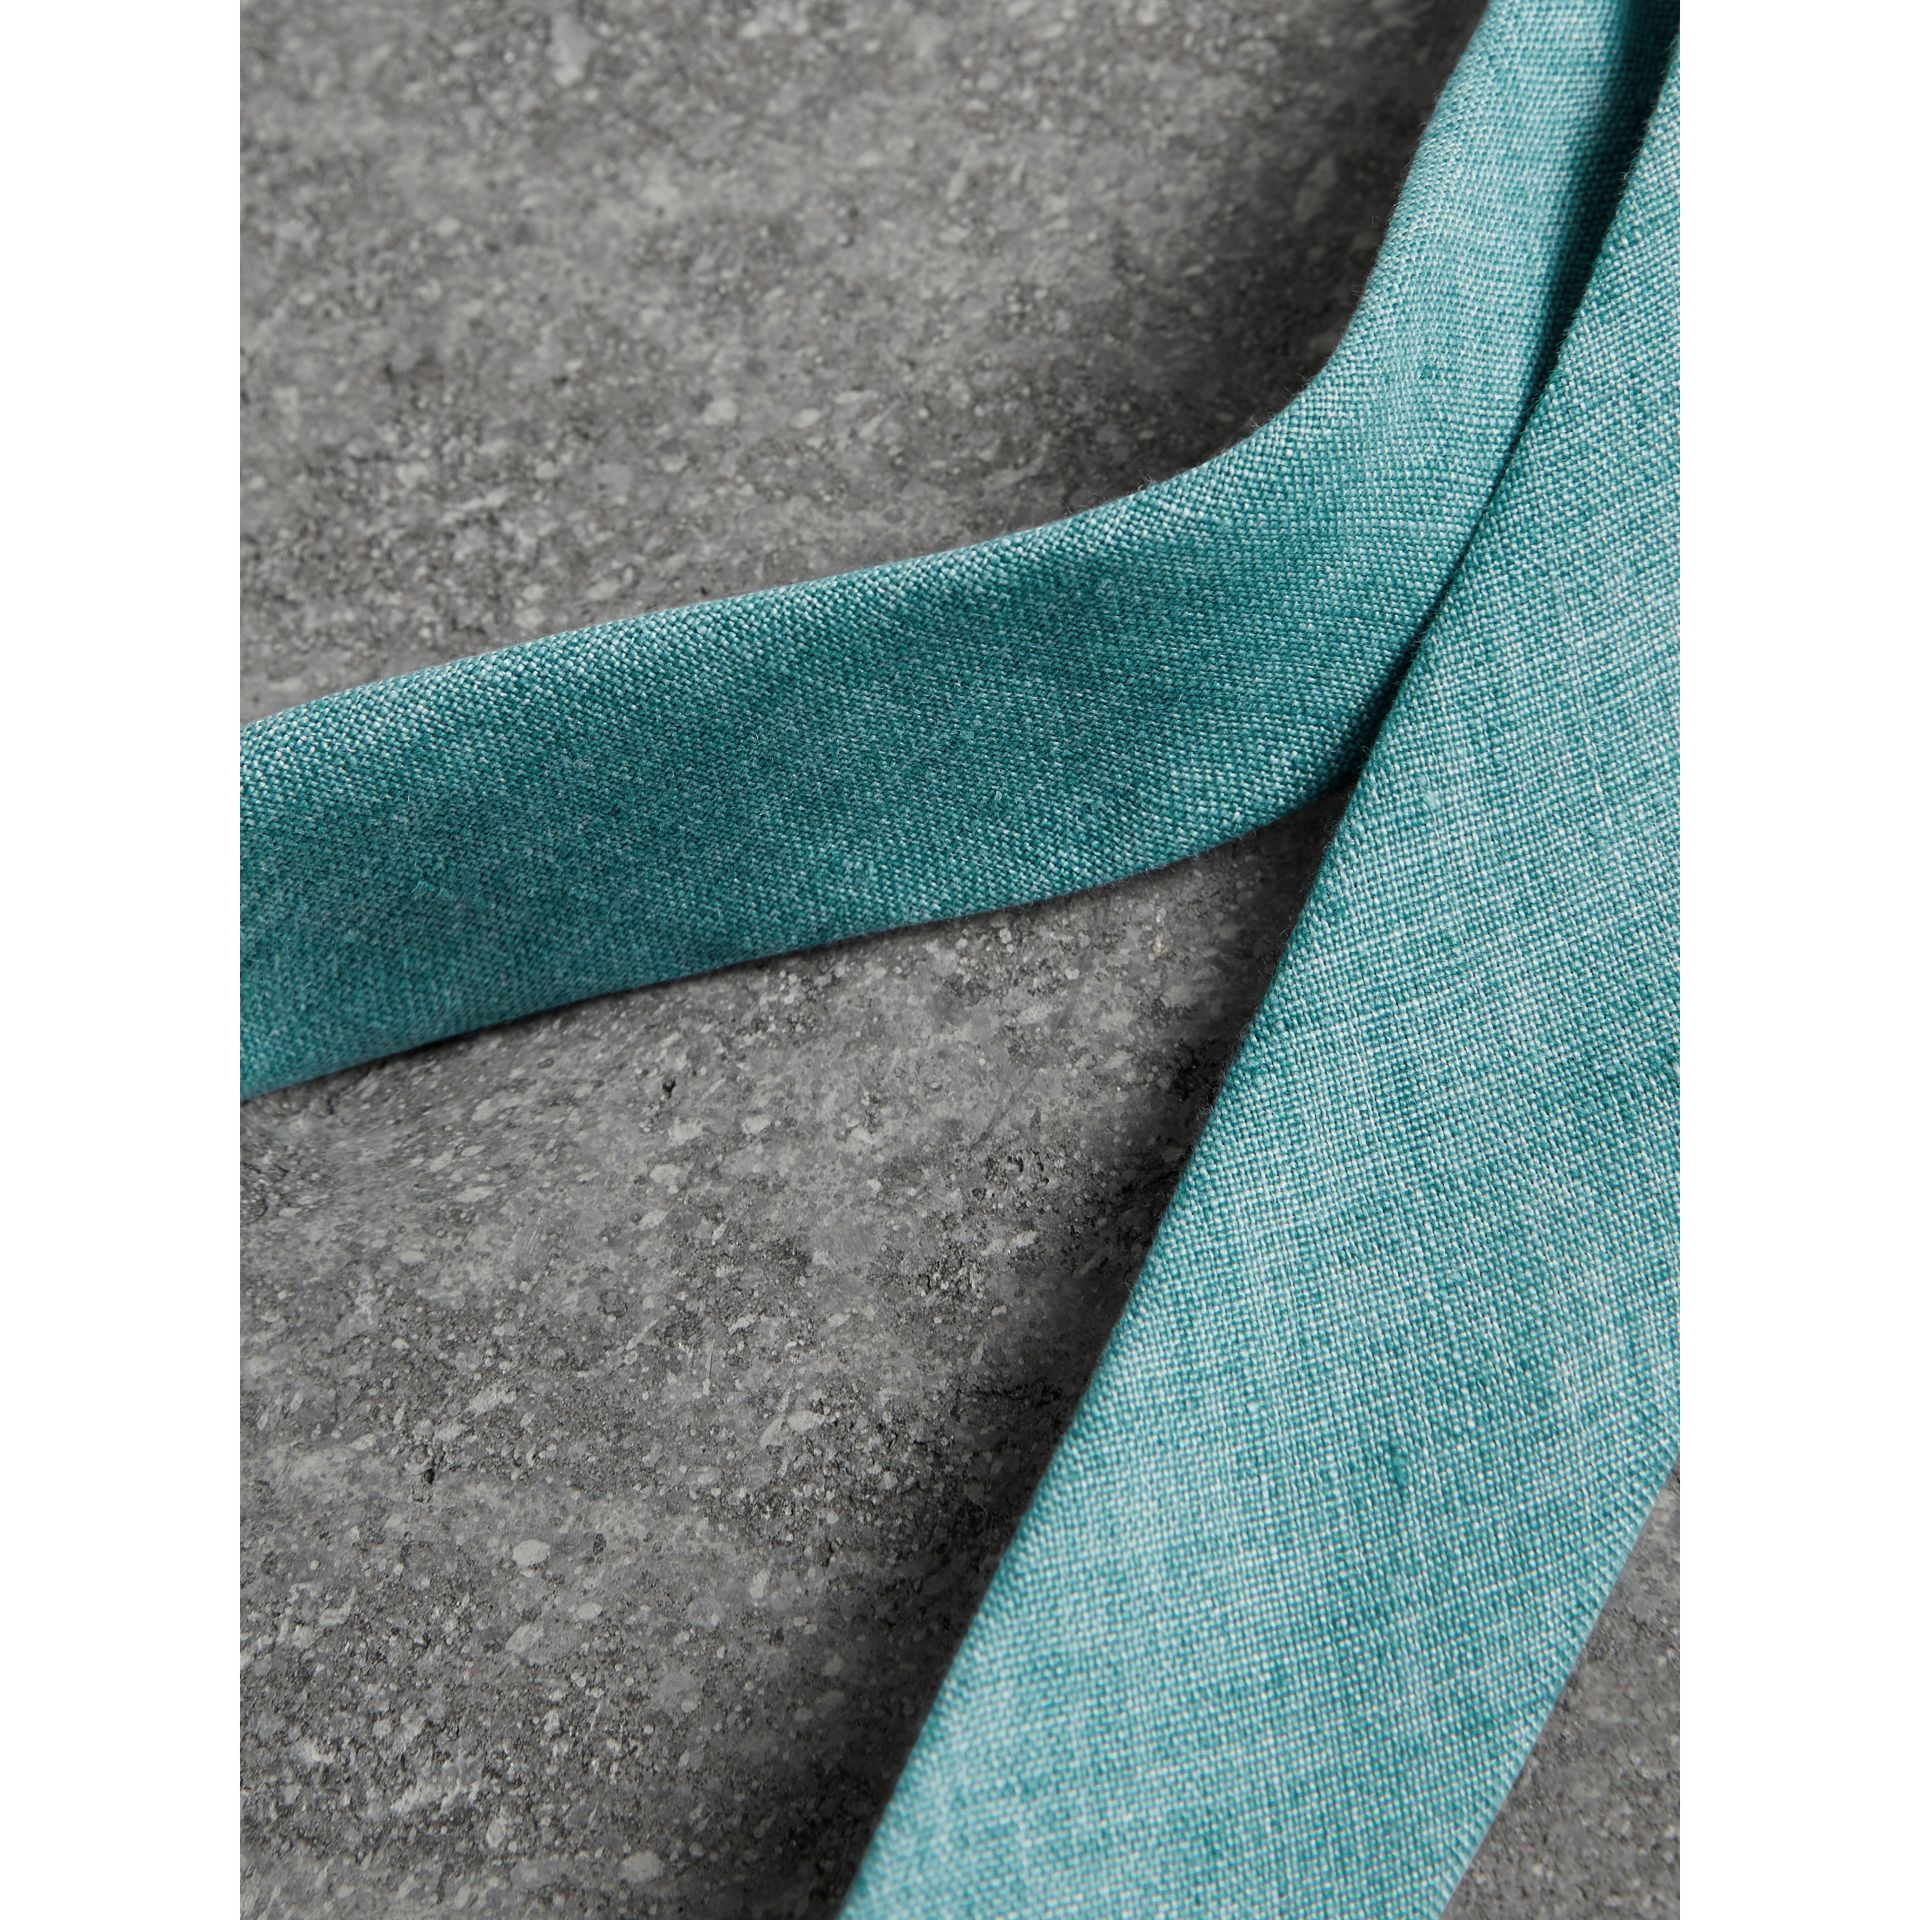 Slim Cut Linen Tie in Pale Turquoise - Men | Burberry - gallery image 1